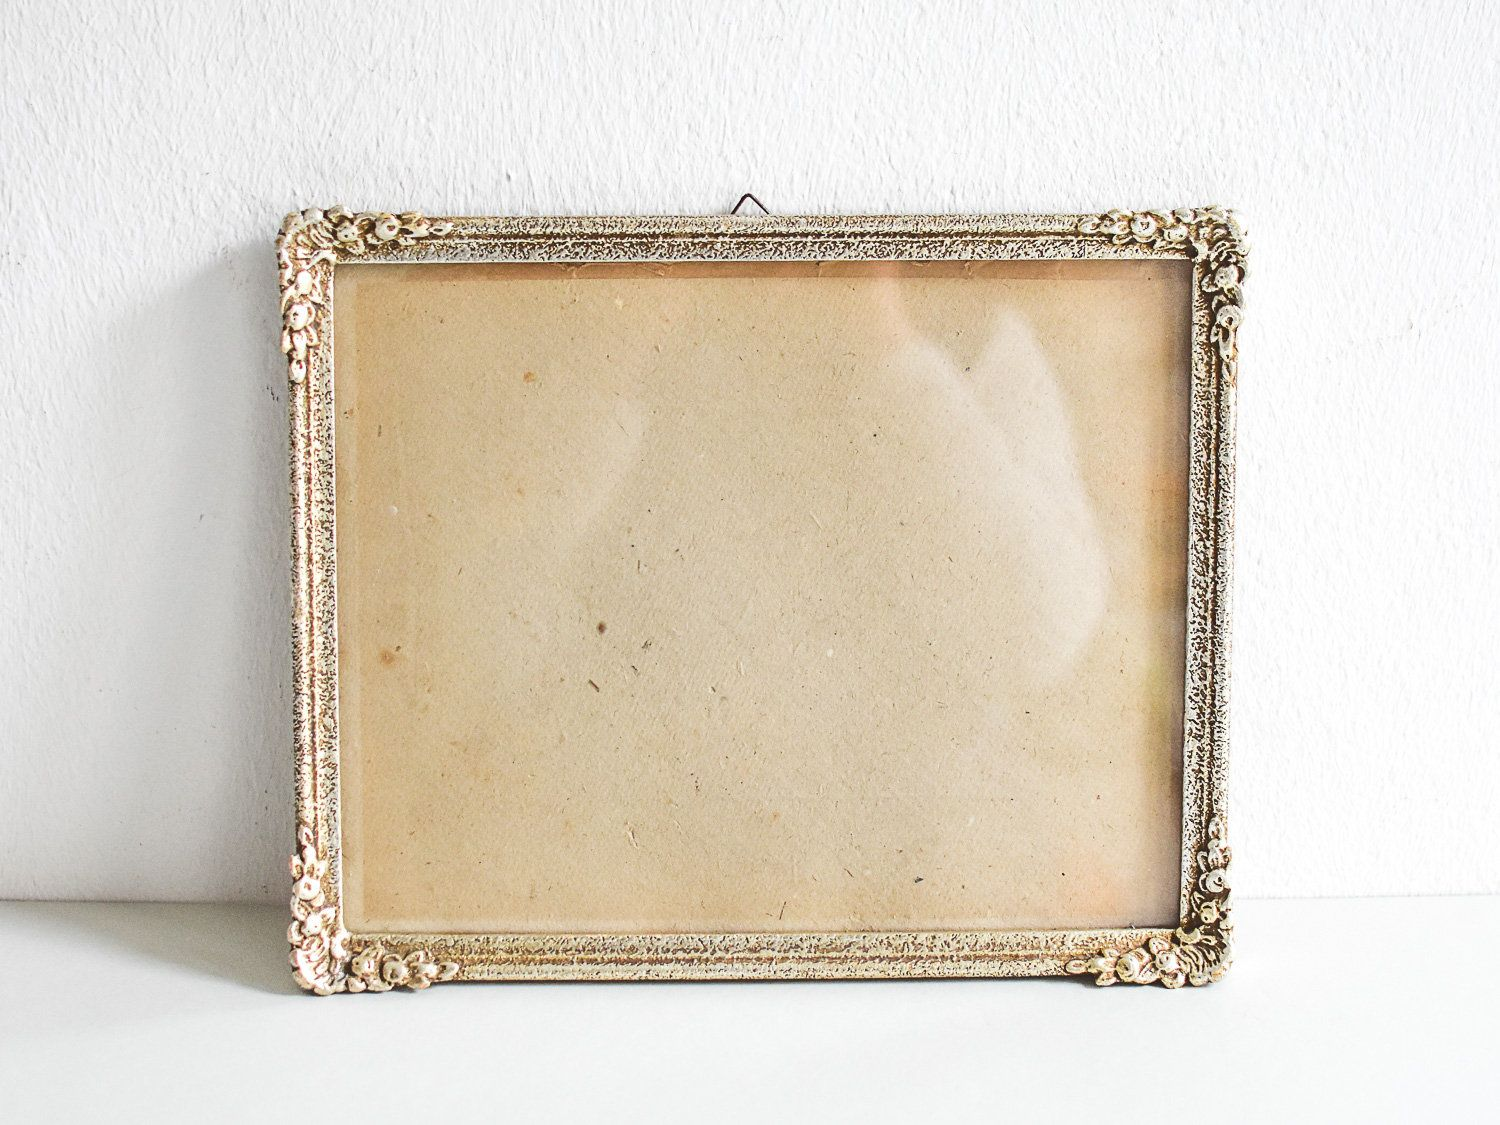 Vintage Wooden Frame, Vintage Frame, Wooden Frame, Picture Frame ...